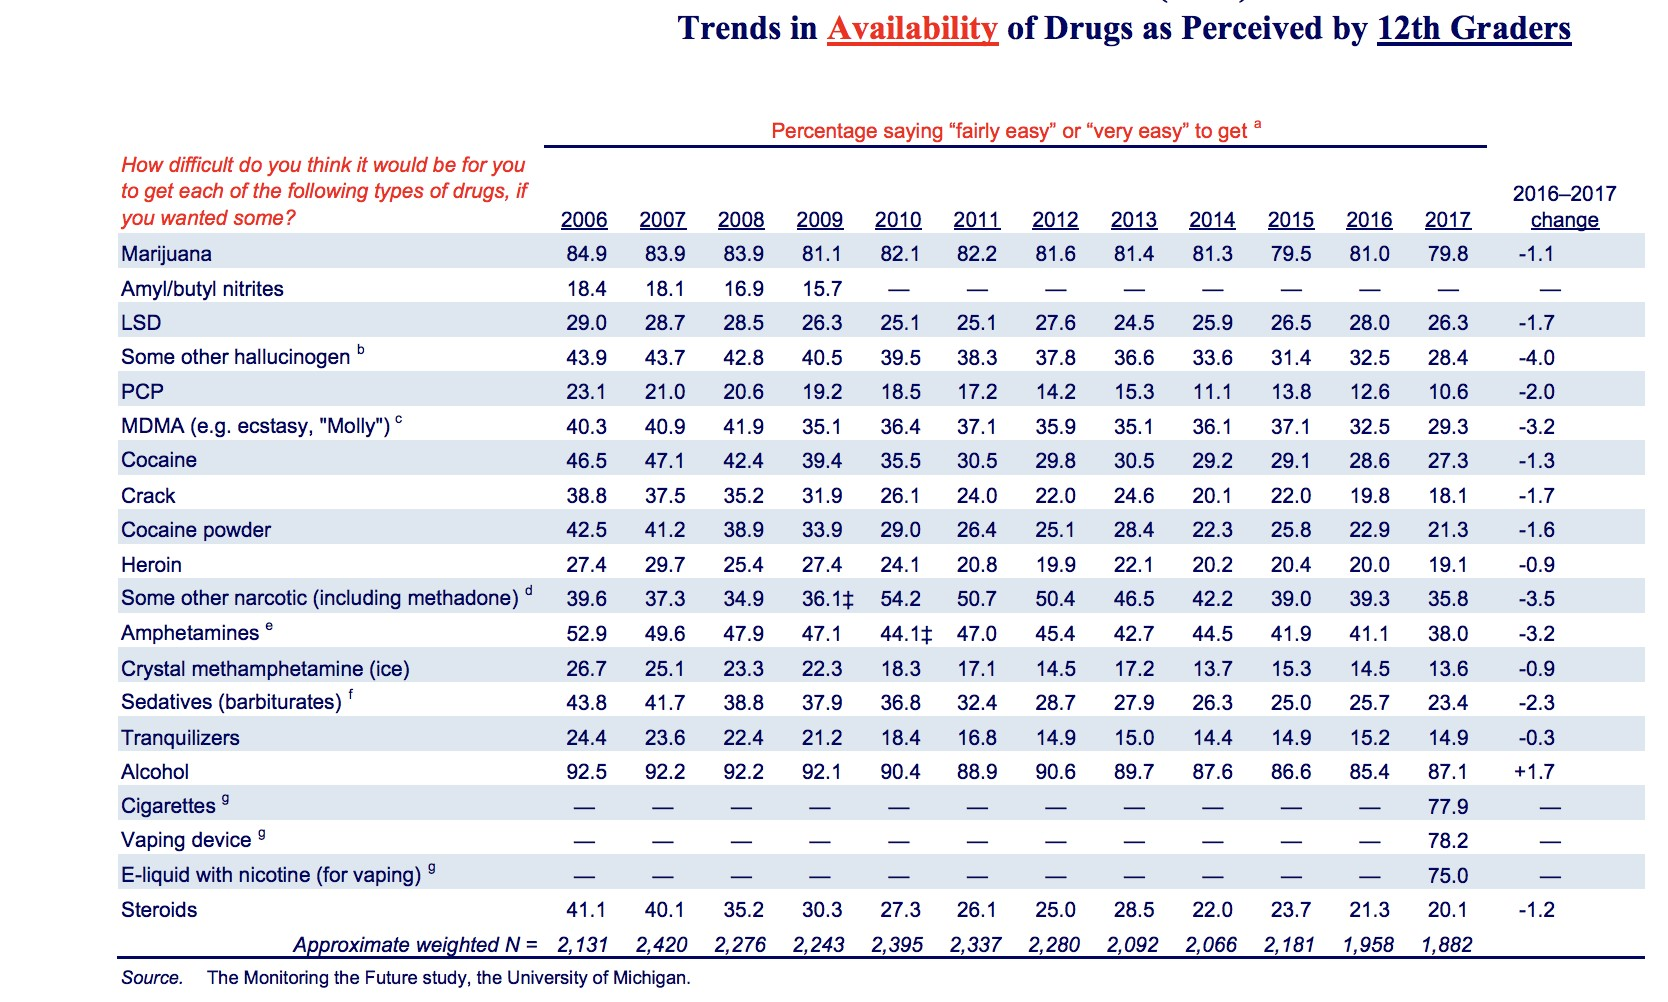 Trends in drugs